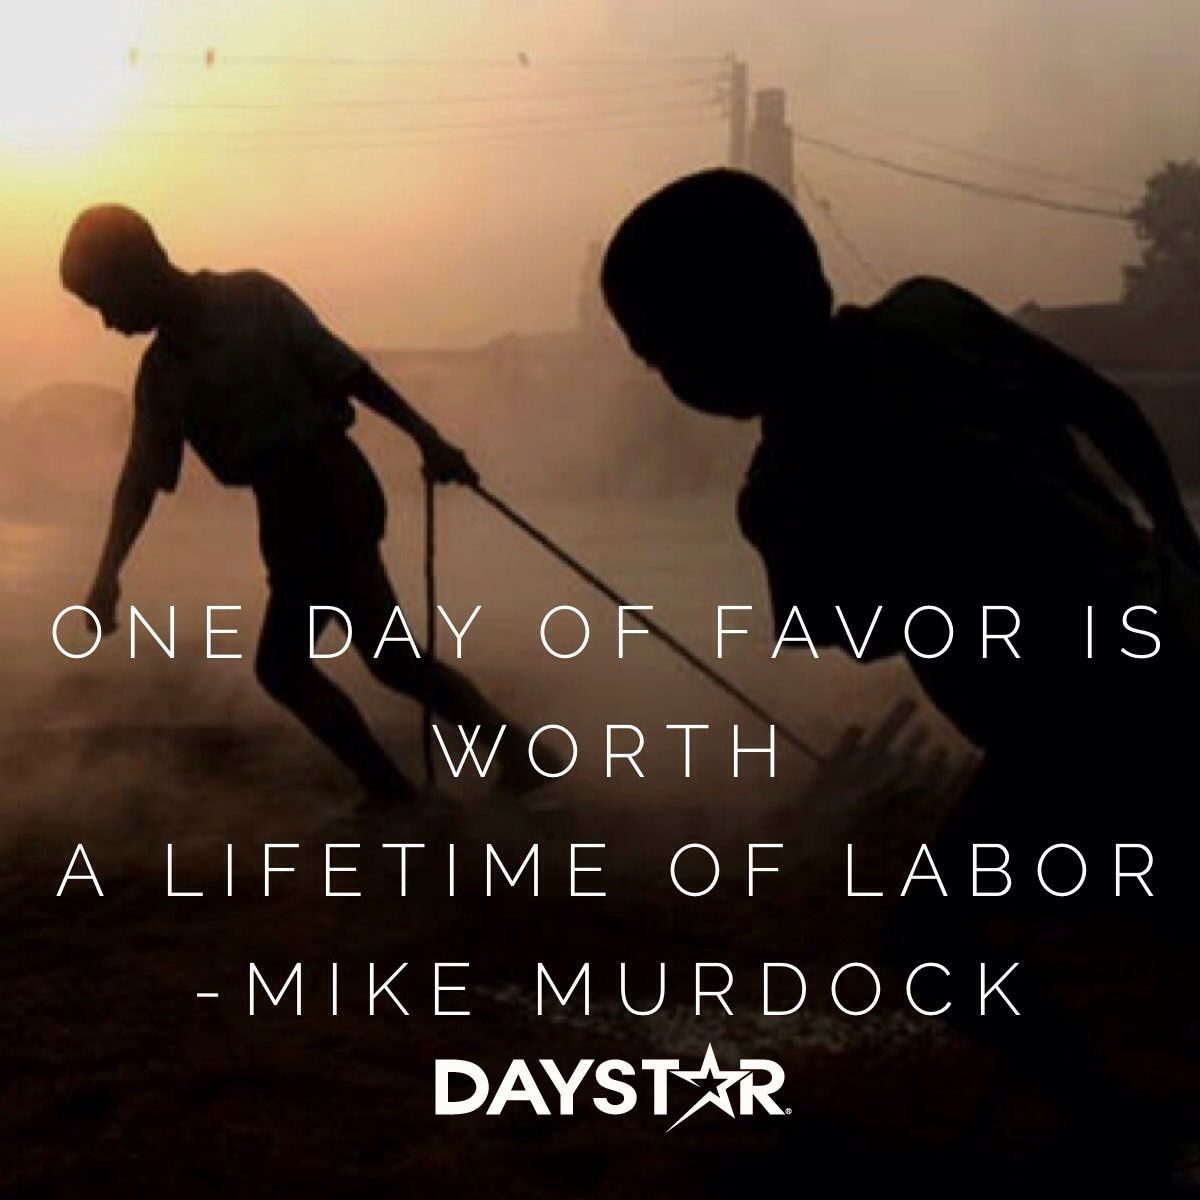 Mike Murdock Quotes: One Day Of Favor Is Worth A Lifetime Of Labor! -Mike